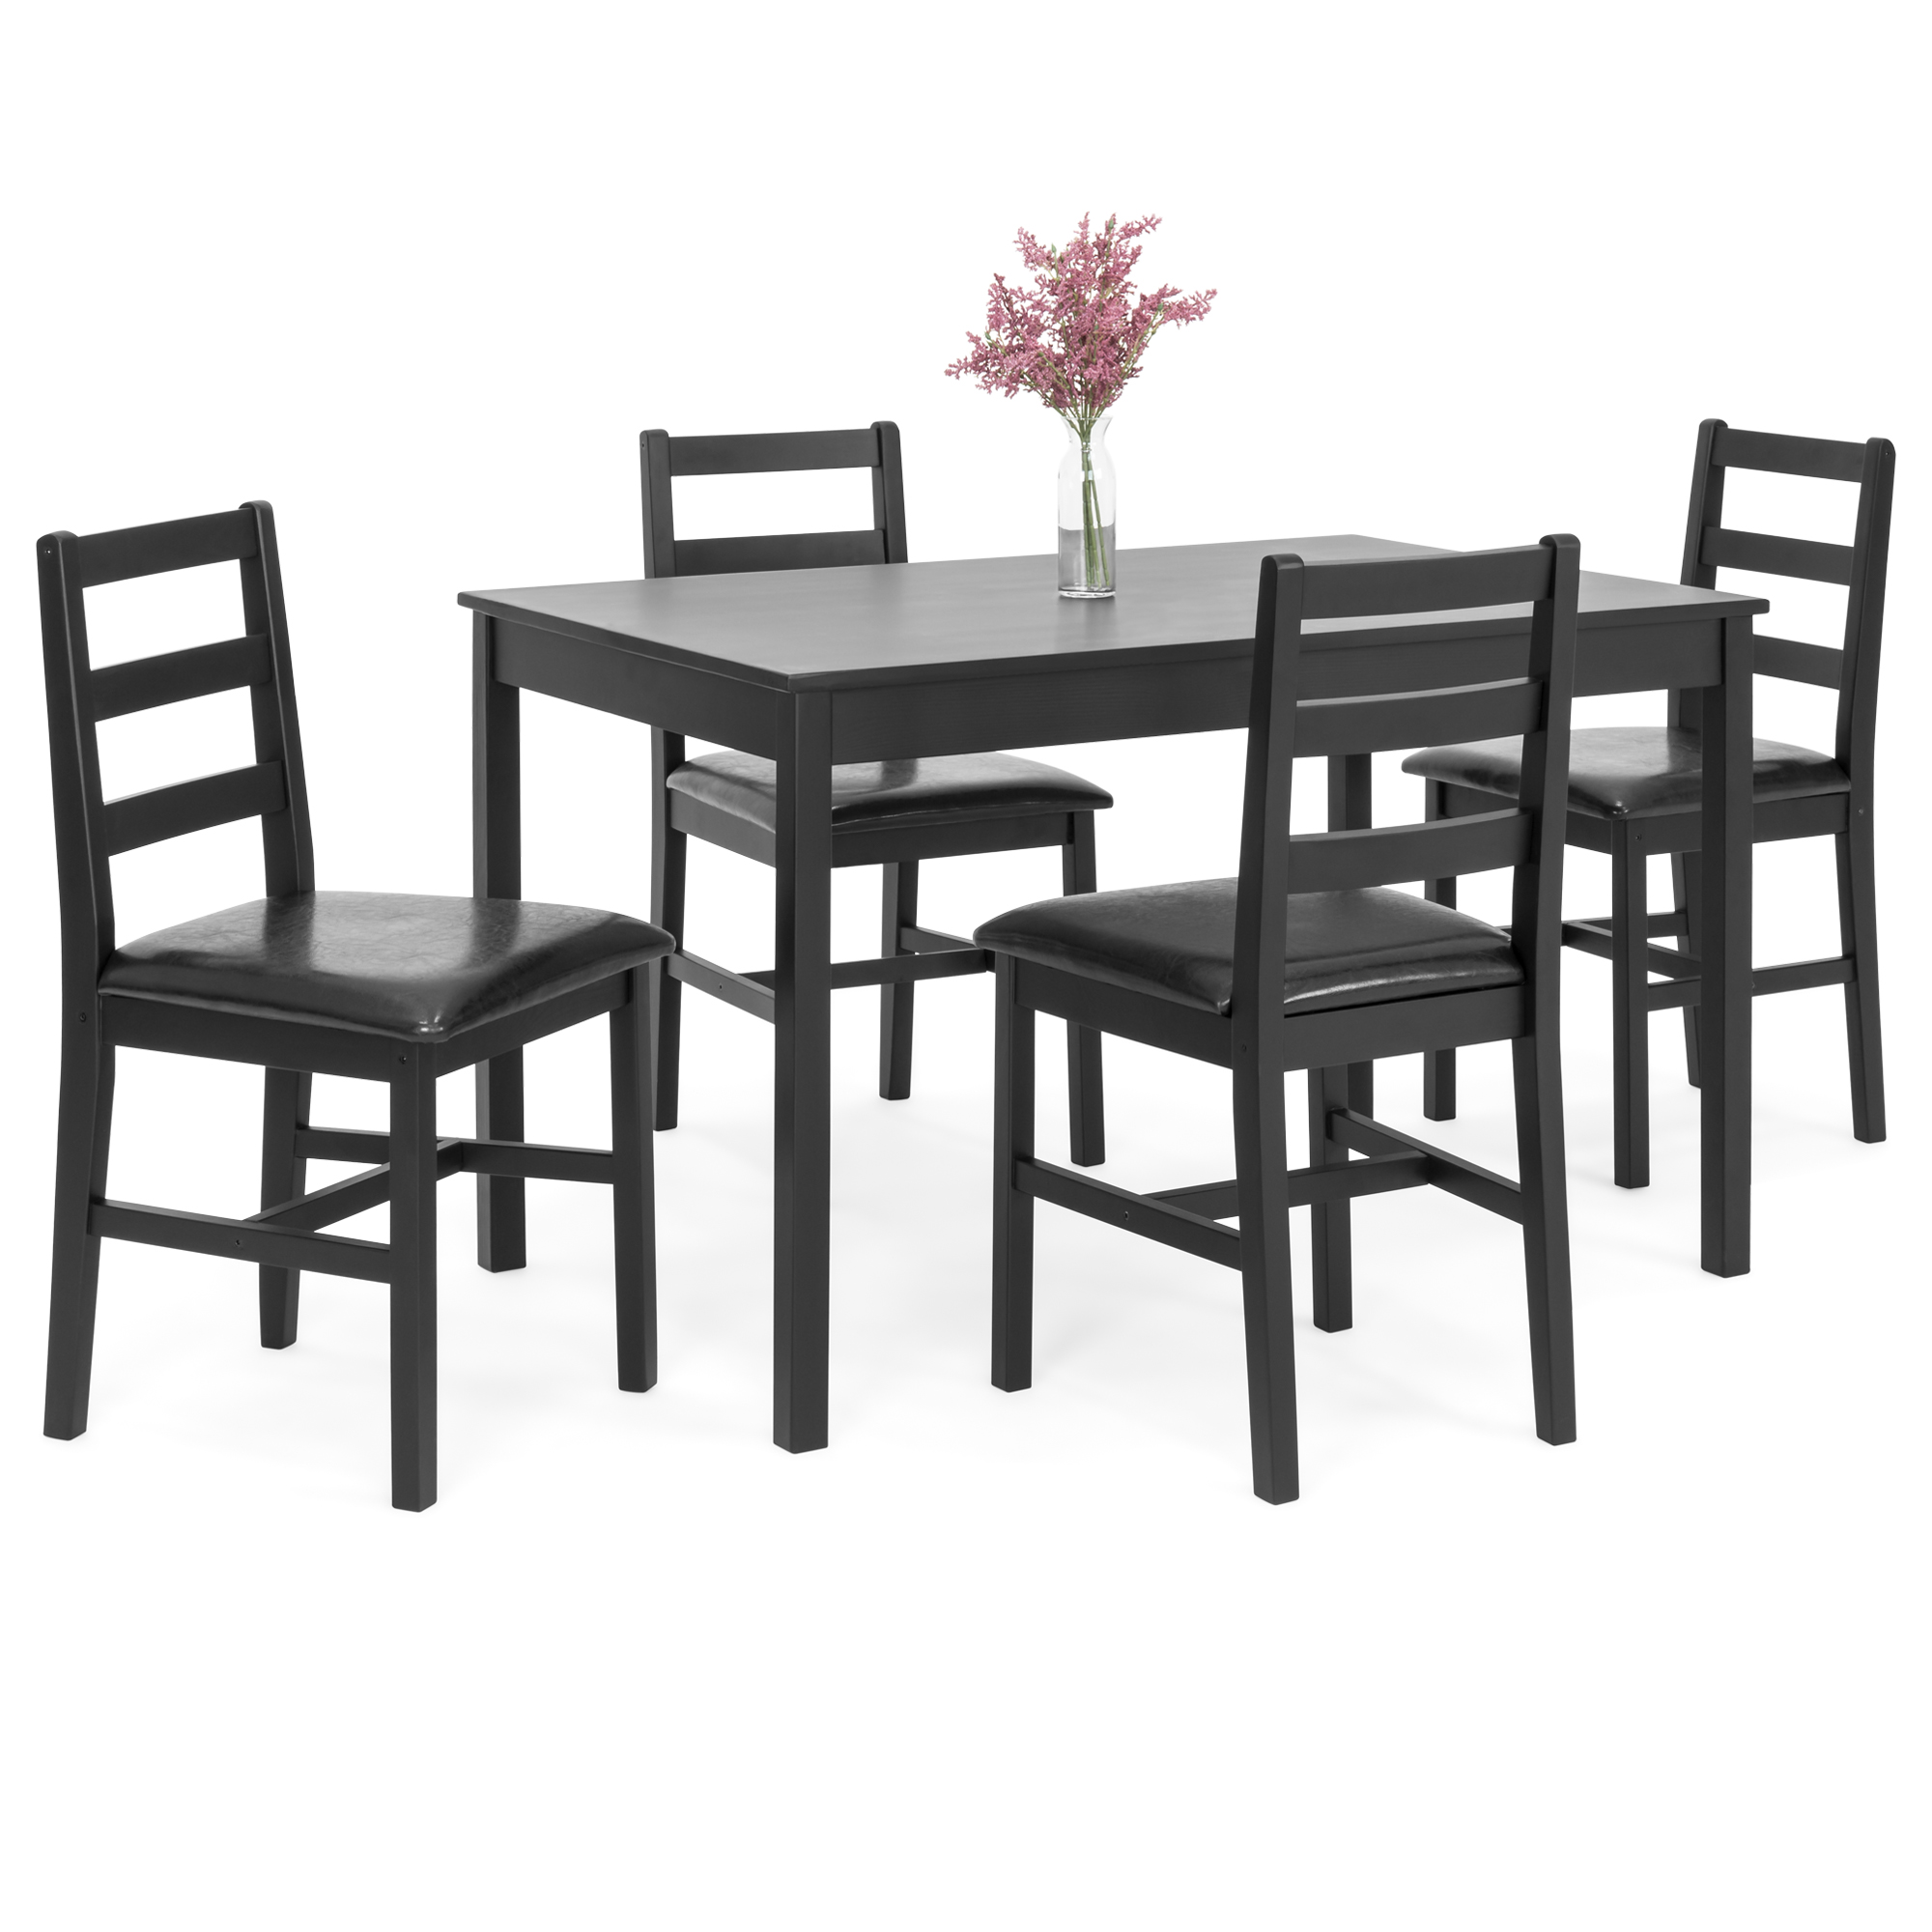 tms furniture nook black 635. Best Choice Products 5-Piece Wooden Breakfast Table Furniture Set For Dining Room, Kitchen Tms Nook Black 635 C